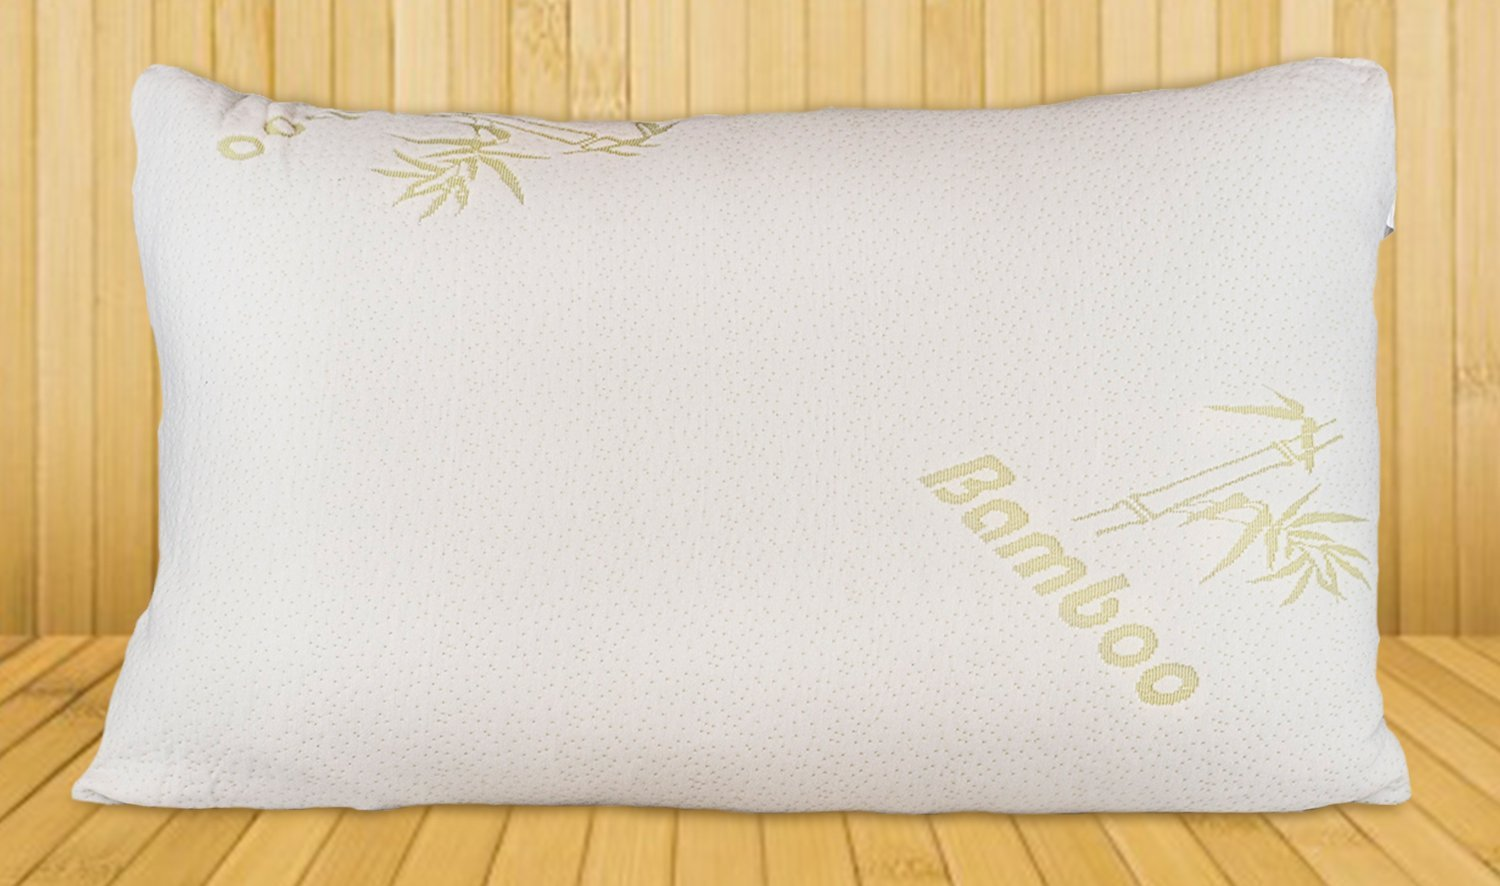 Top 5 Best Bamboo Pillow Reviews — Which One to Pick in 2019?